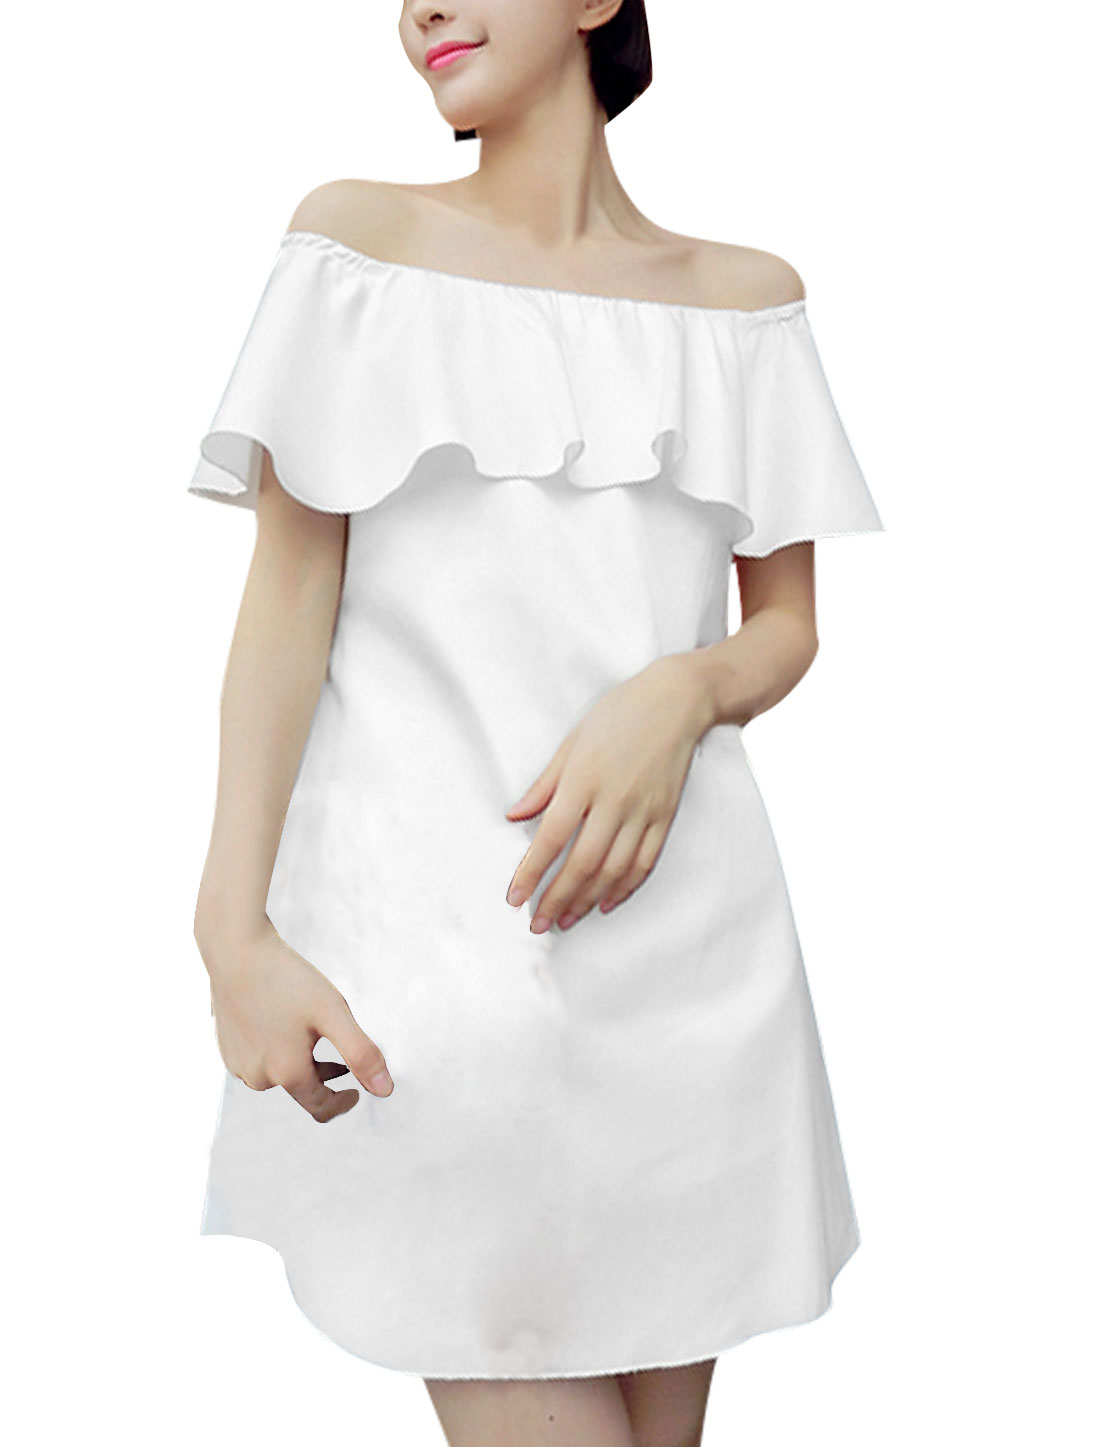 Lady Pullover Flouncing Design Concealed Zipper Back Dress White M